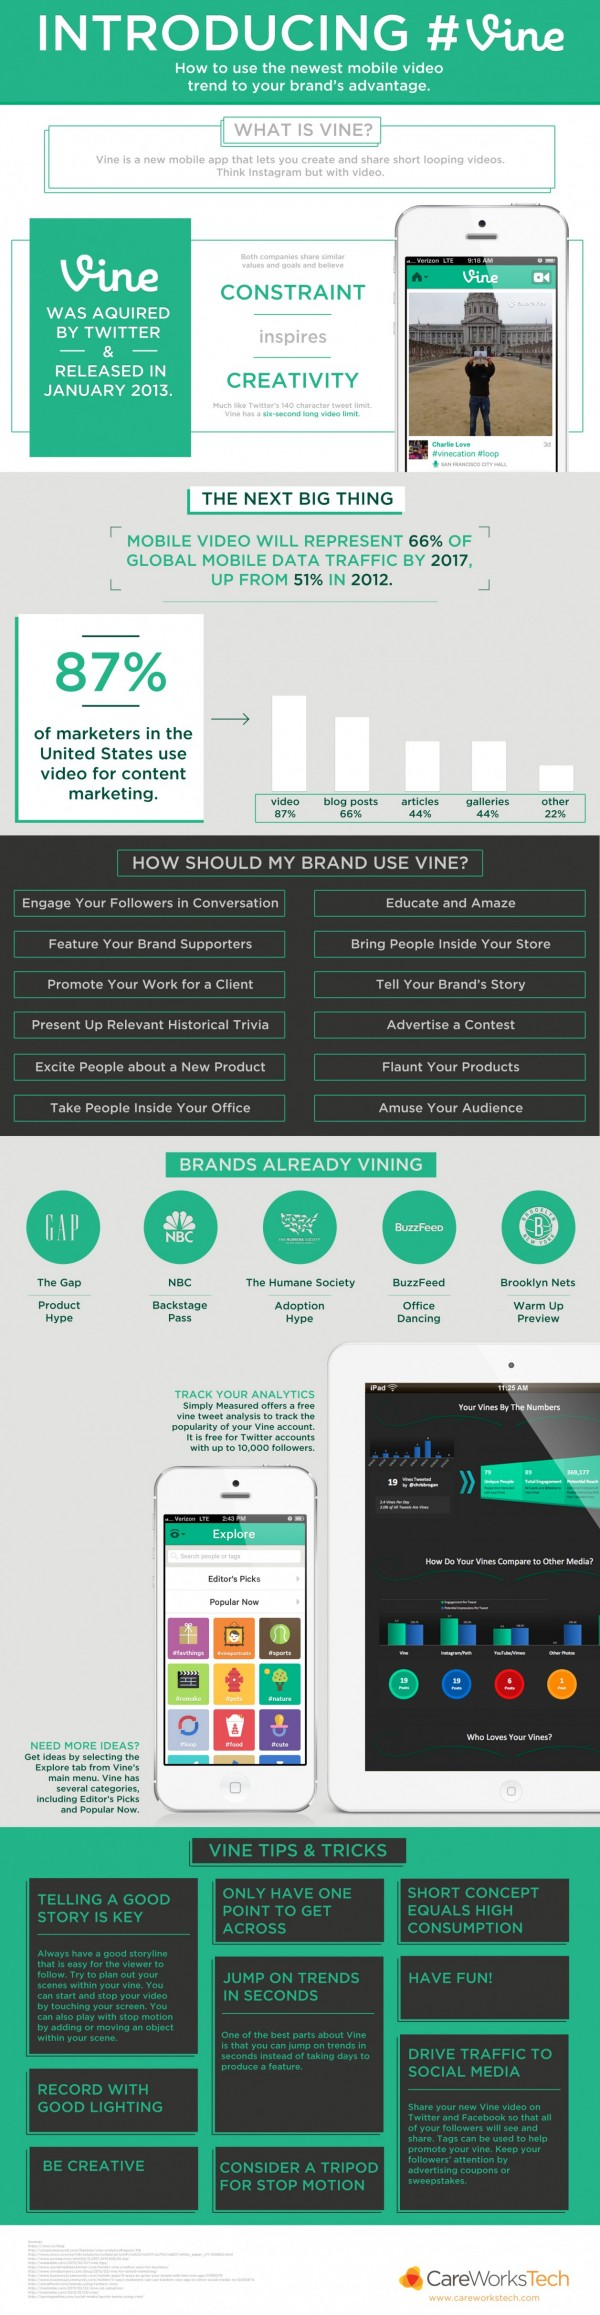 Vine - Infographic - We are Social Media